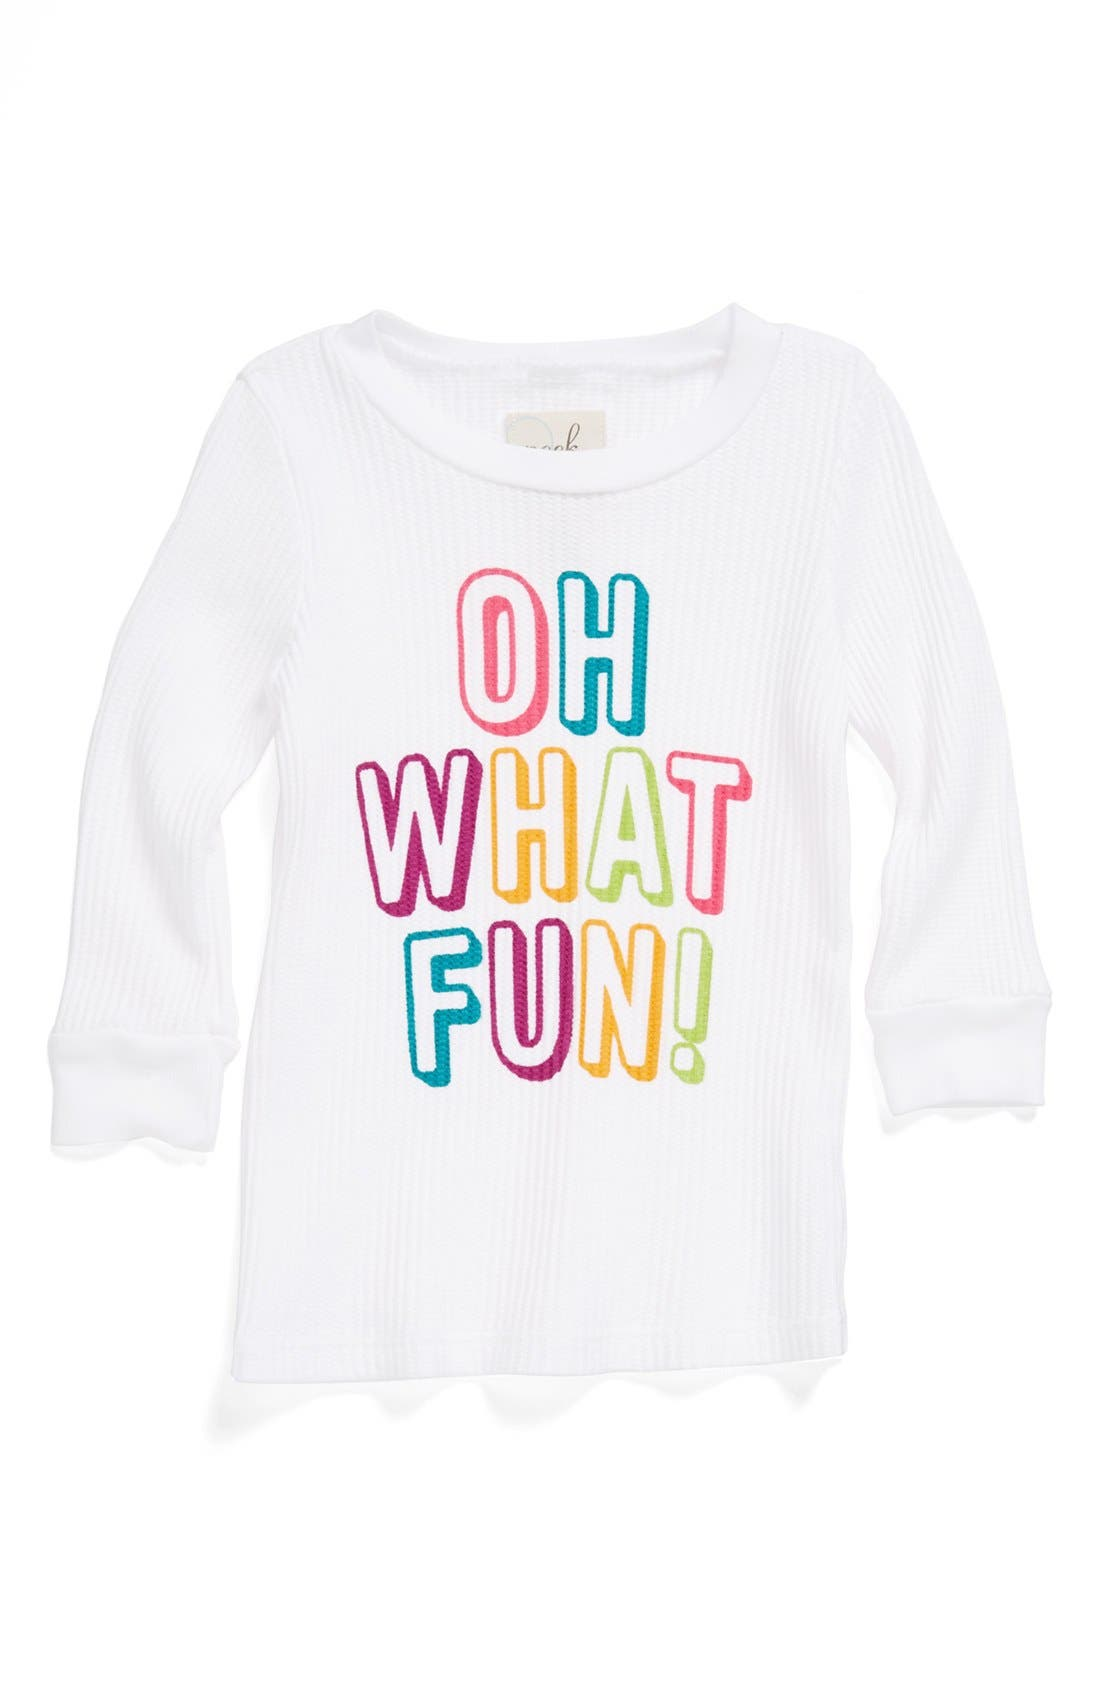 Alternate Image 1 Selected - Peek 'Oh What Fun' Tee (Toddler Girls, Little Girls & Big Girls)